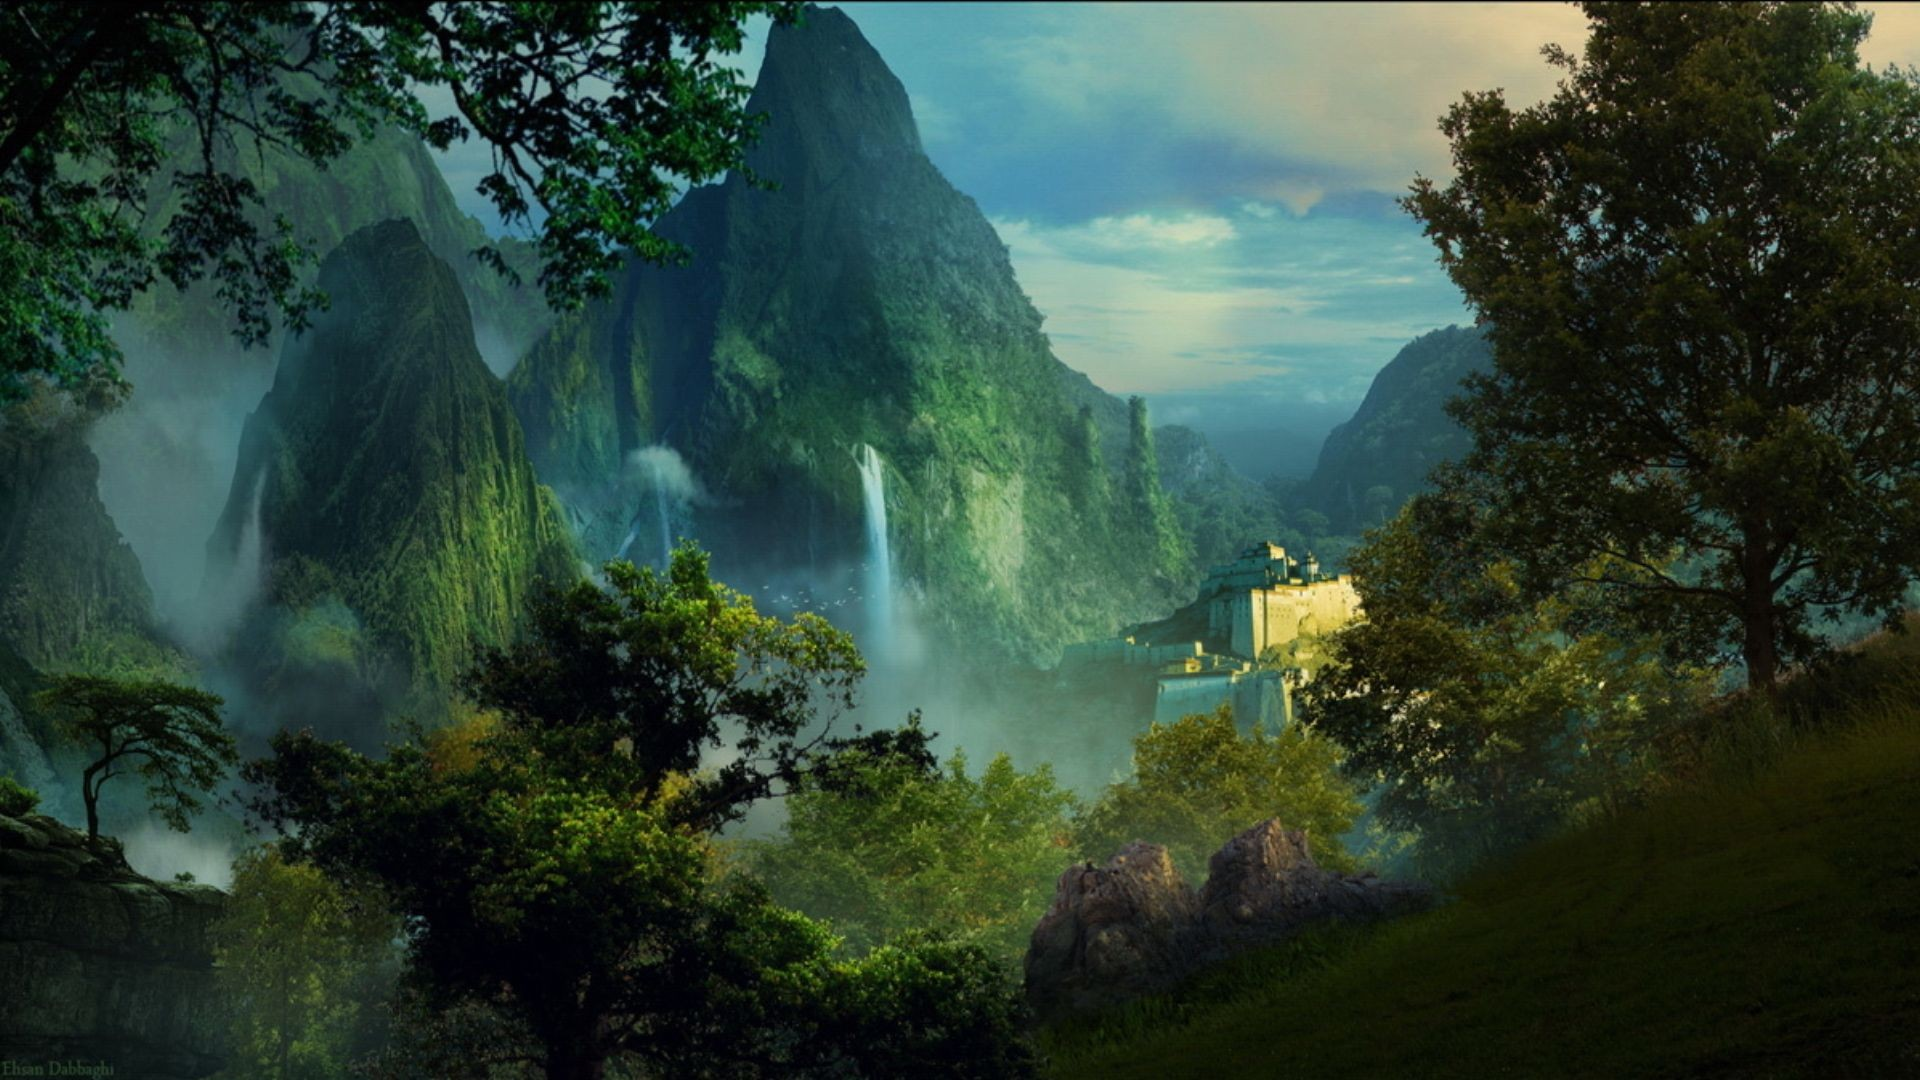 hd-fantasy-wallpapers-desktop-widescreen | wallpaper.wiki